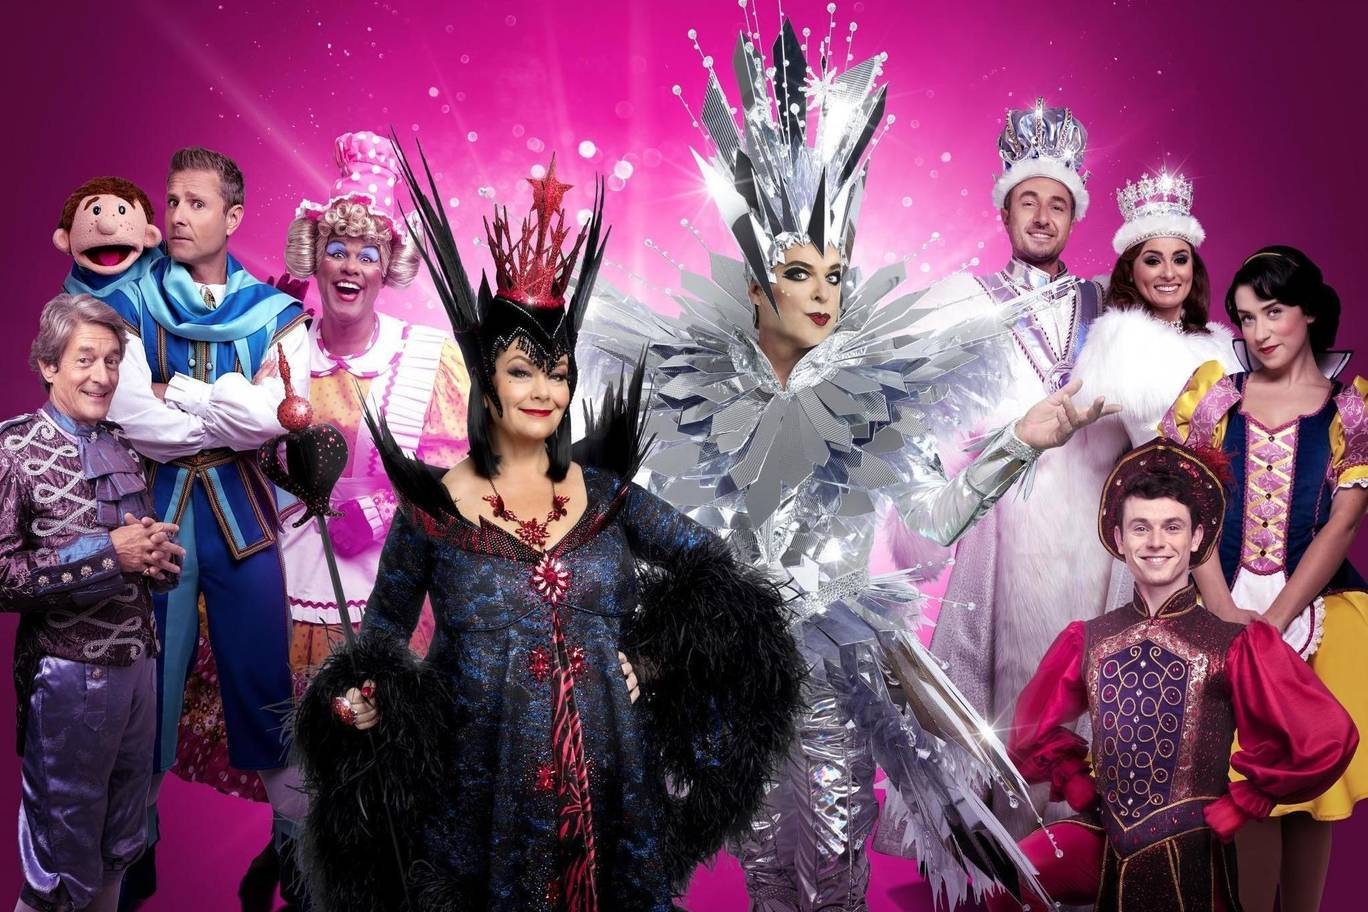 l-r-nigel-havers-paul-zerdin-gary-wilmot-dawn-french-julian-clary-vincent-simon-flavia-cacace-charlie-stemp-and-danielle-hope.jpg